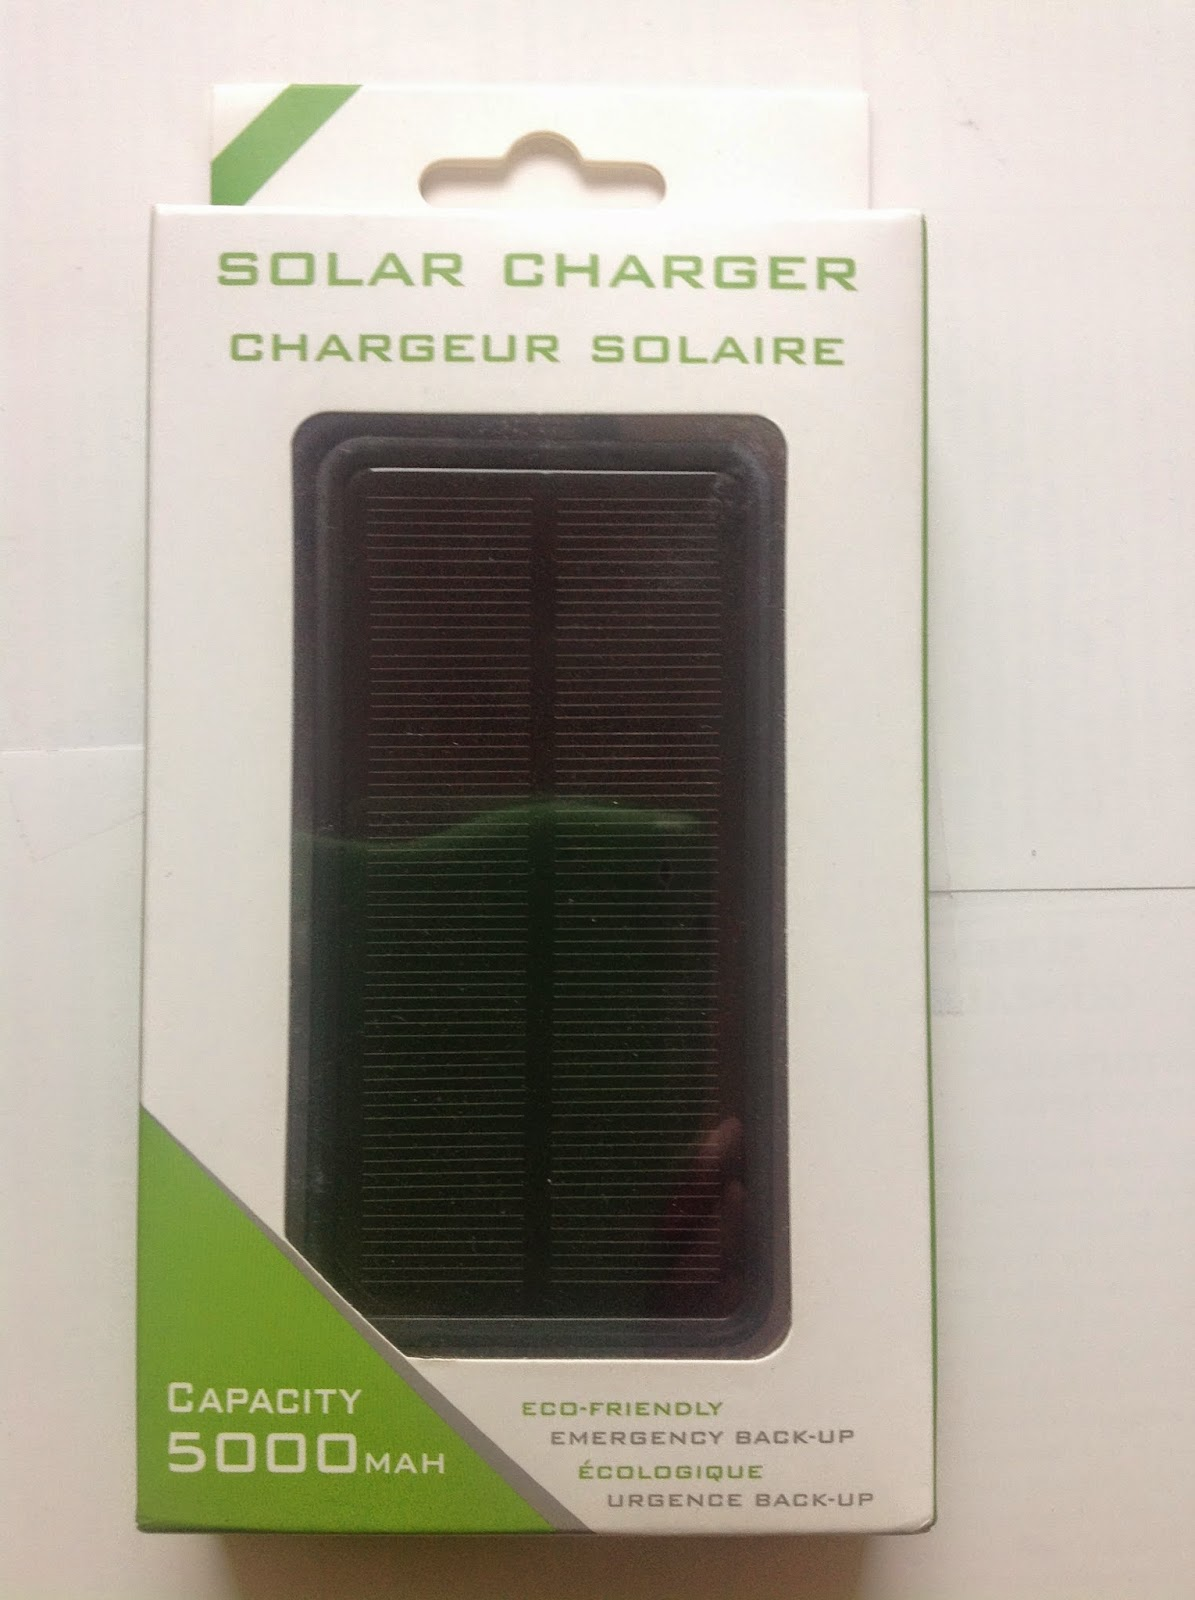 .: Product Review: Solar Charger from Day Tech